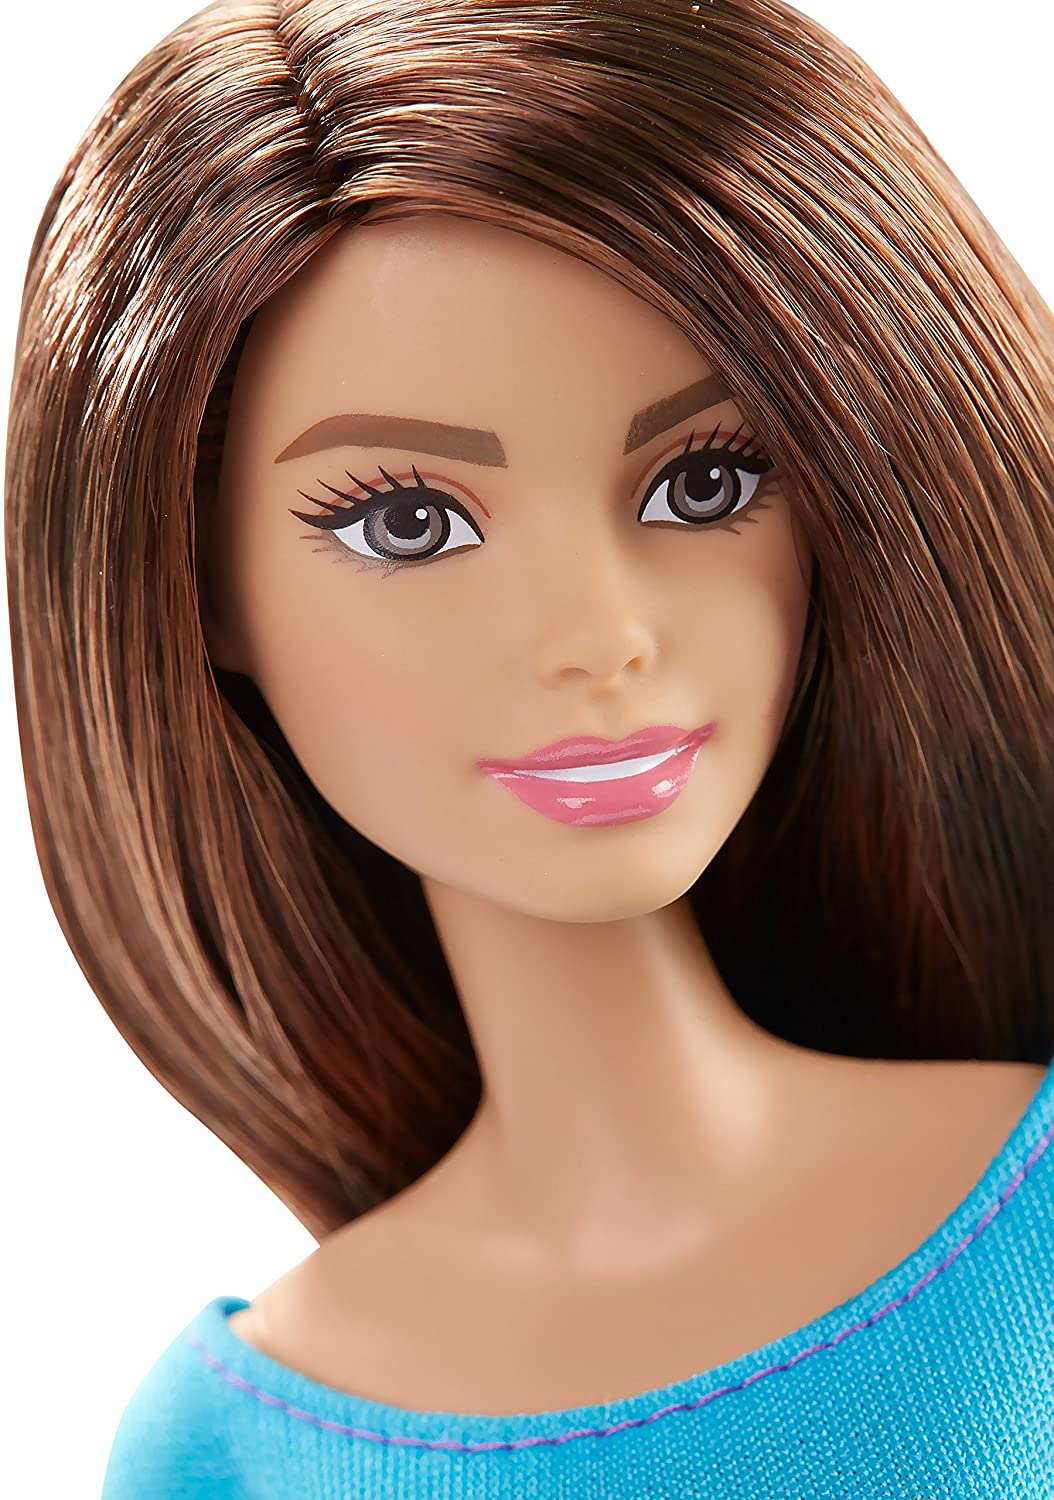 Pleasing Amazon Com Barbie Made To Move Barbie Doll Blue Top Toys Amp Games Short Hairstyles For Black Women Fulllsitofus